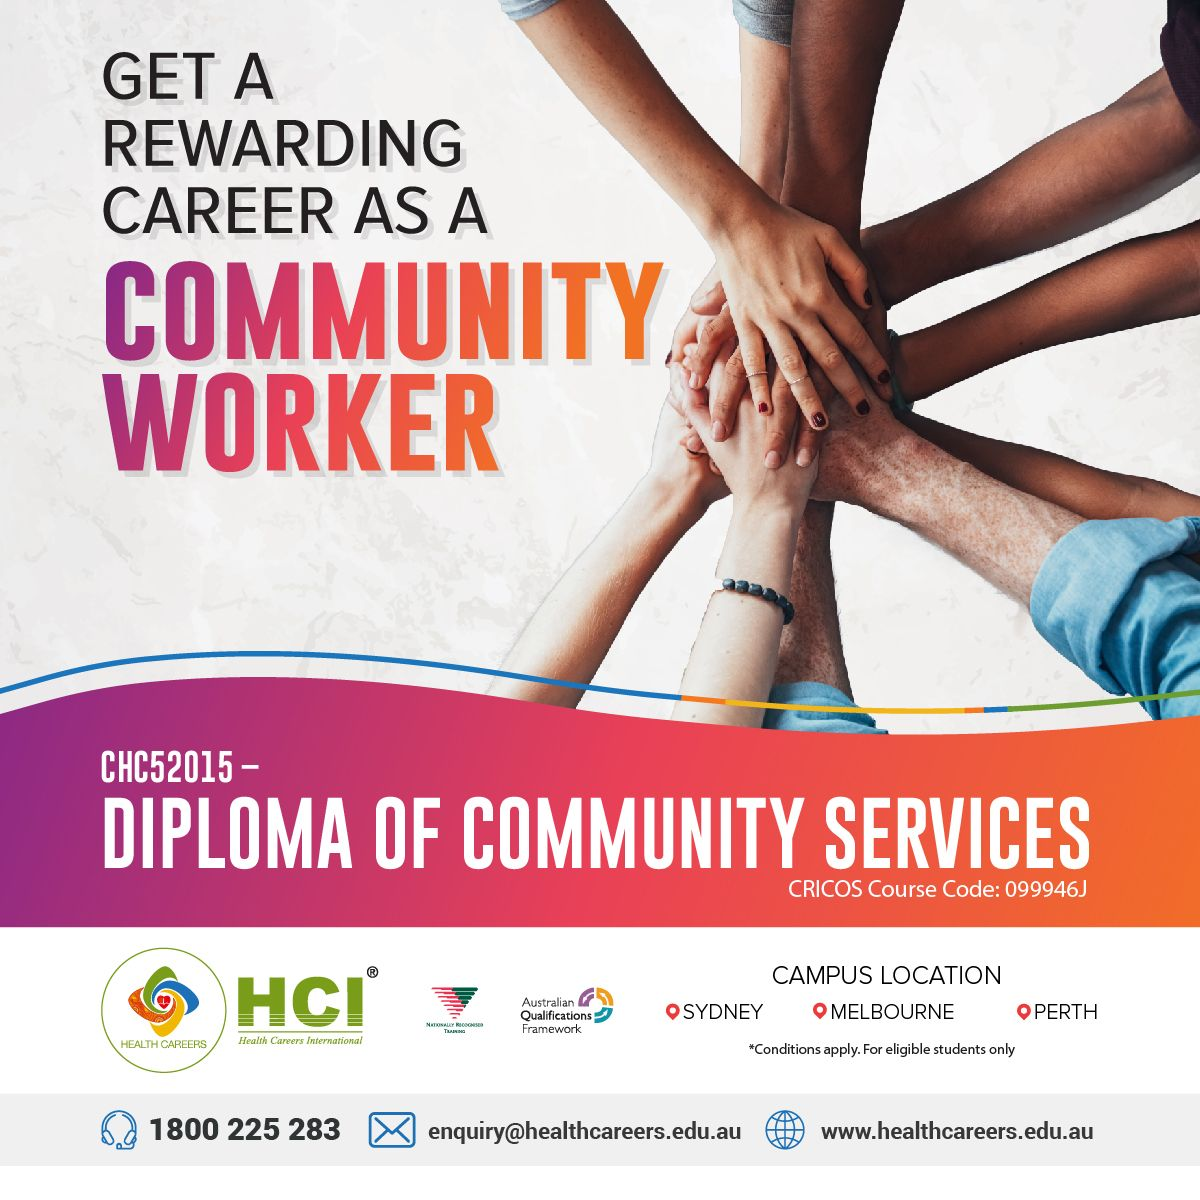 Community workers support patients in getting the